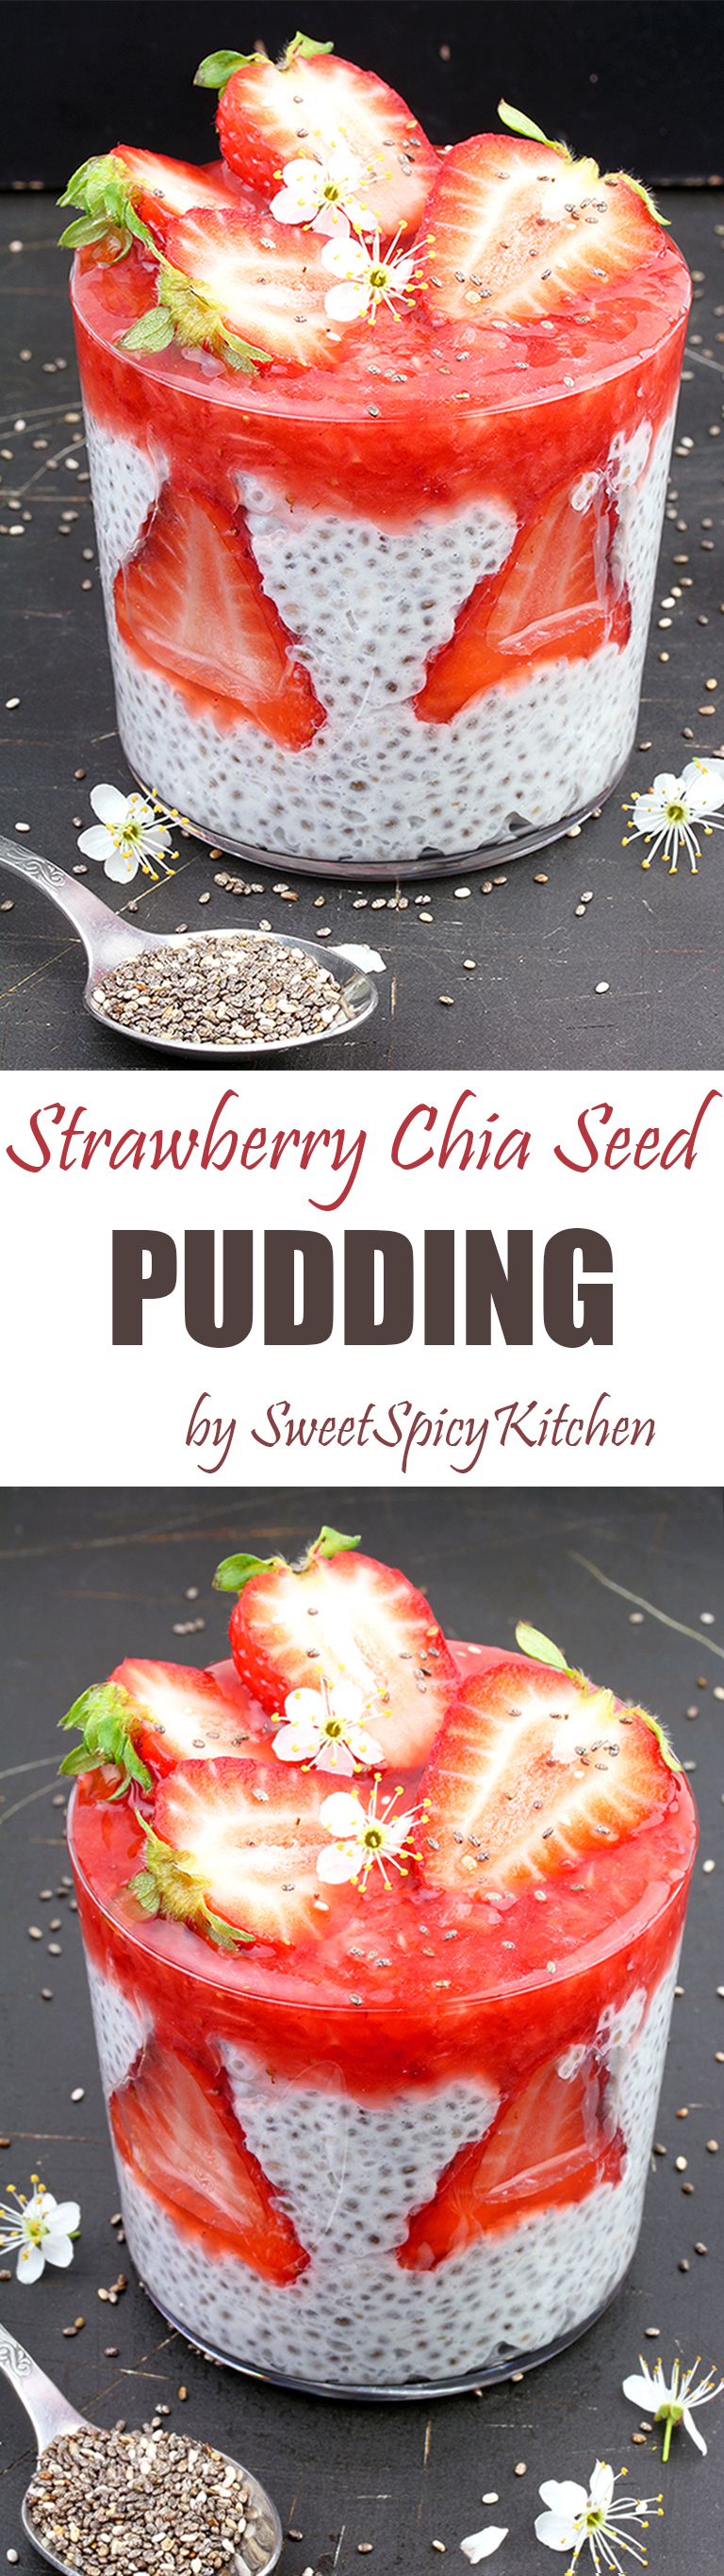 Strawberry Chia Seed Pudding is super quick and simple recipe for healthy and delicious meal.